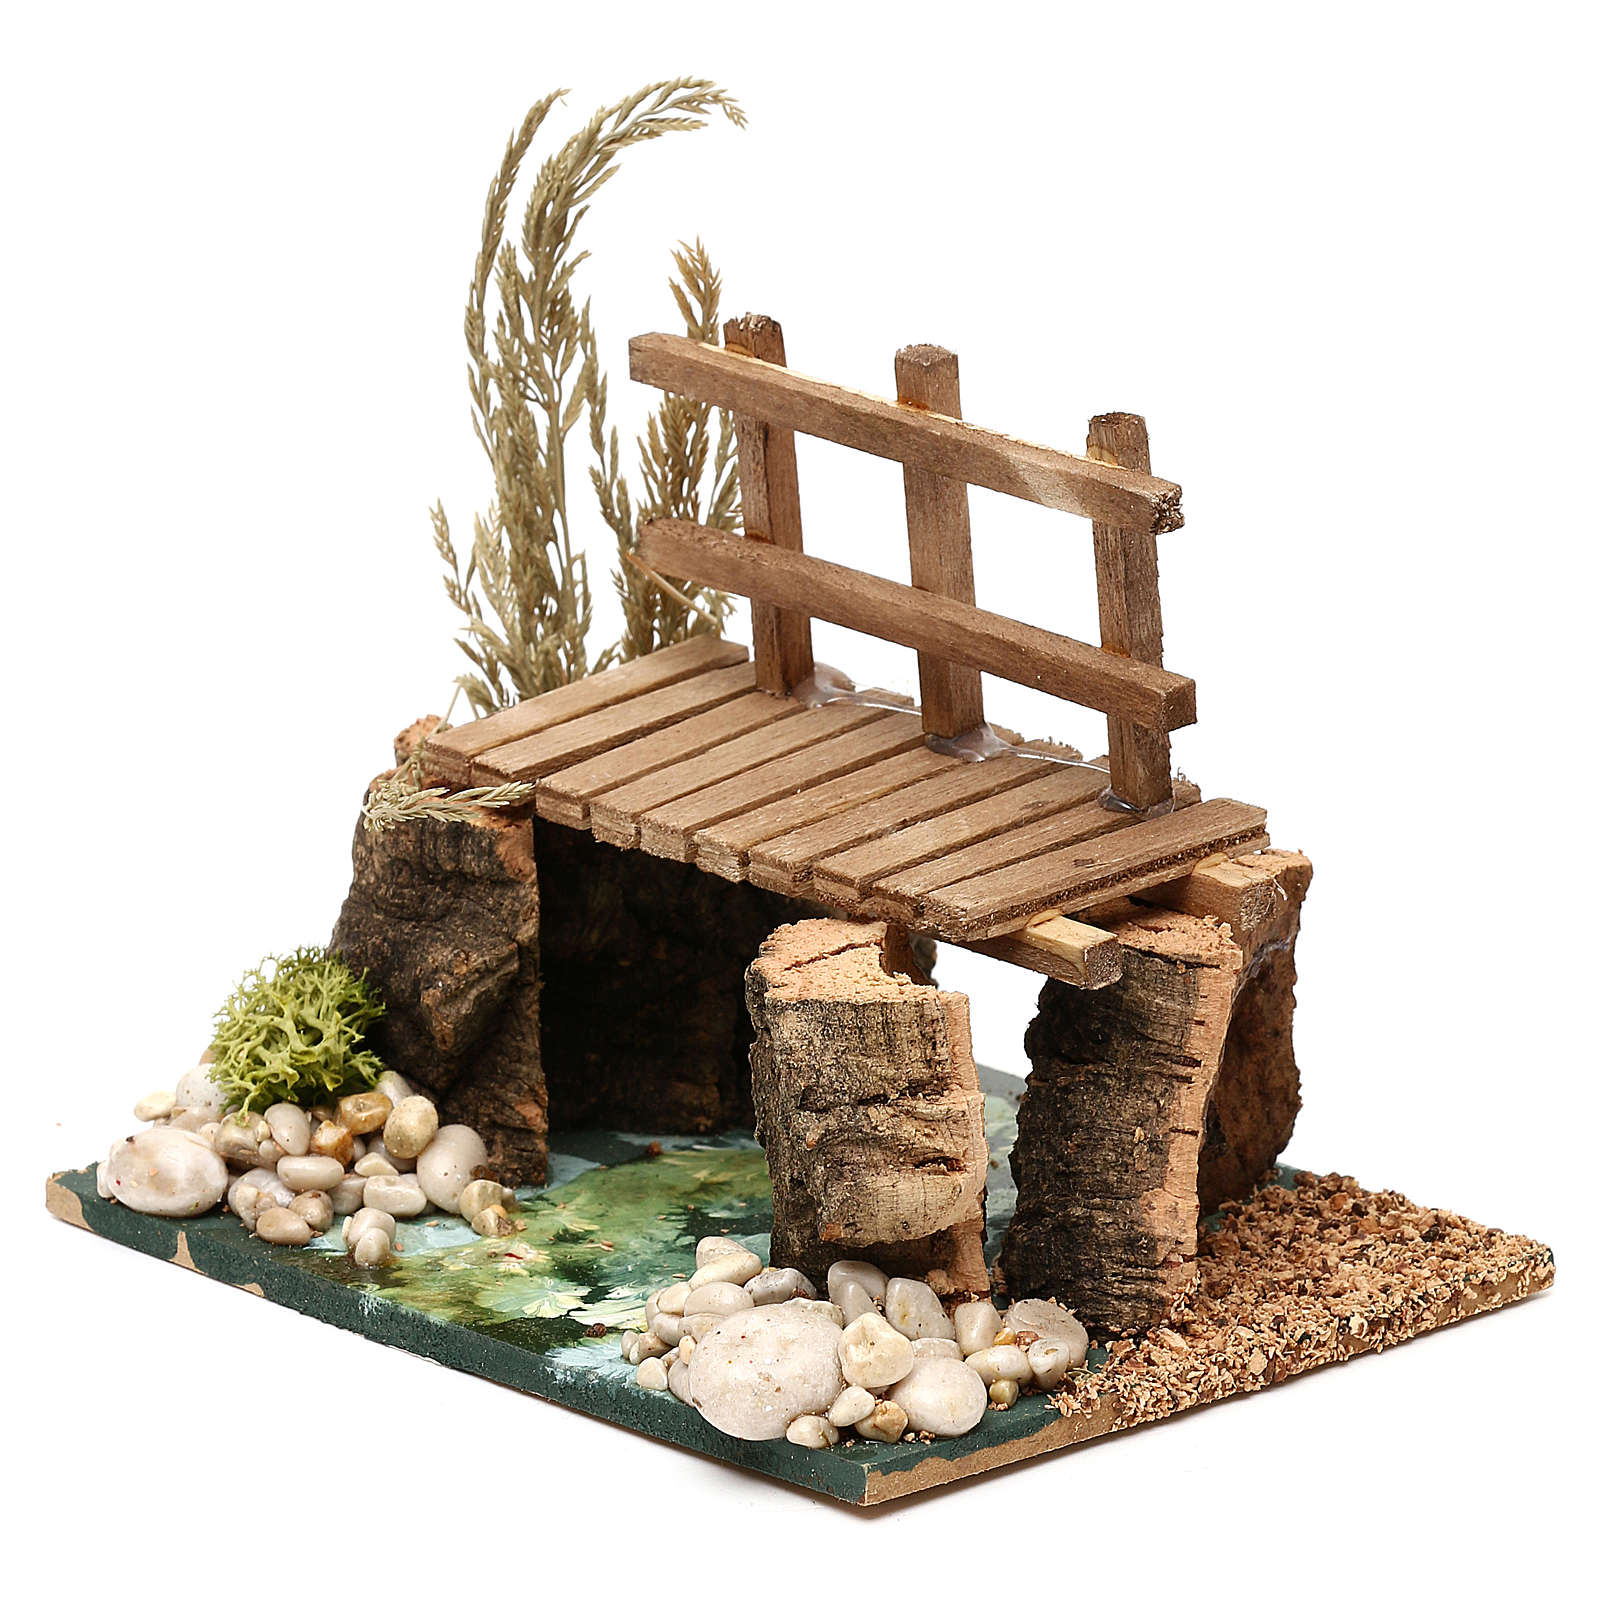 River with walkway 13x10x10 cm for Nativity Scenes of 7 cm 4